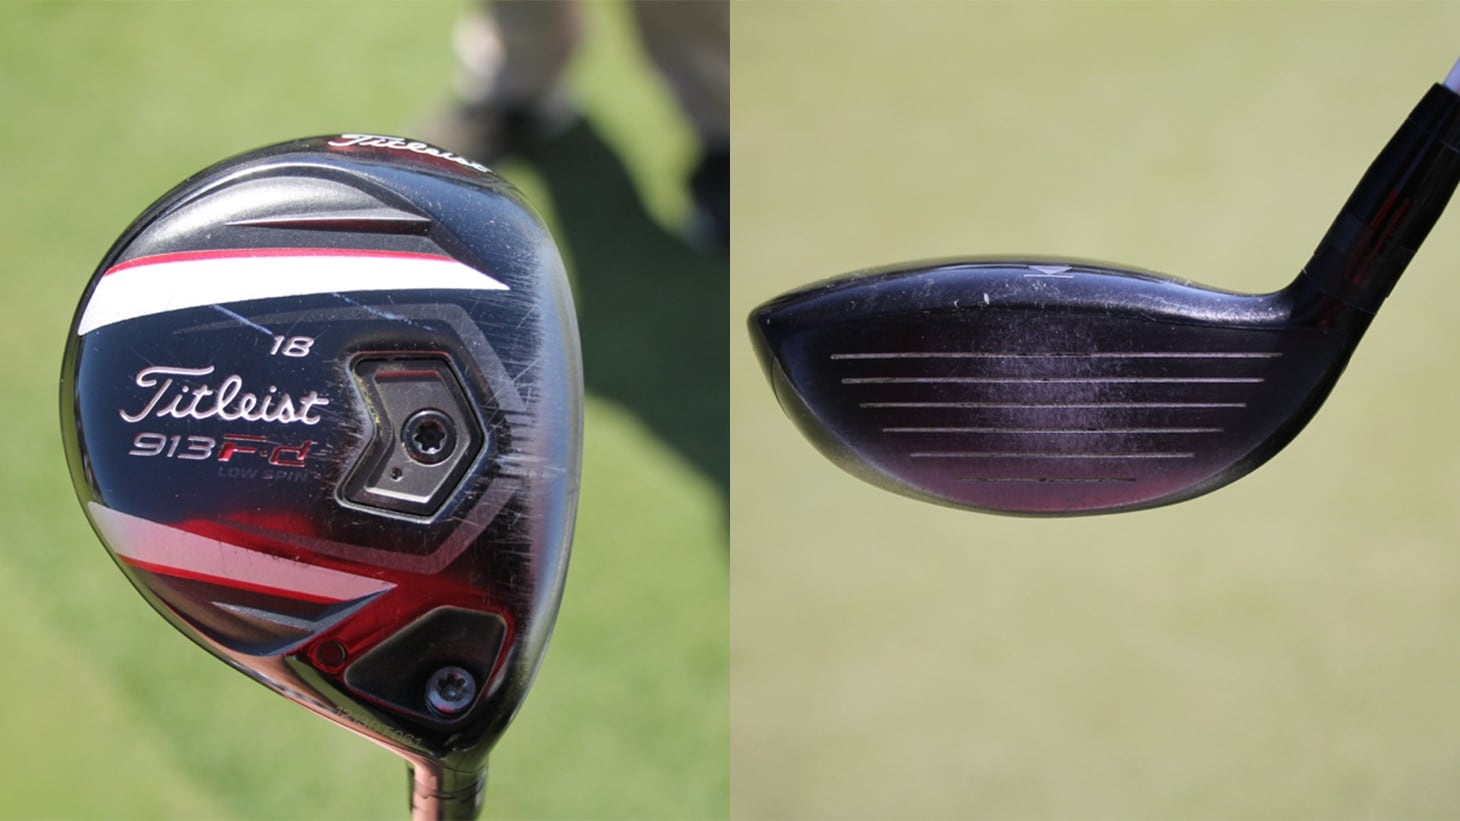 913 Fd (18.0°) fairway metal